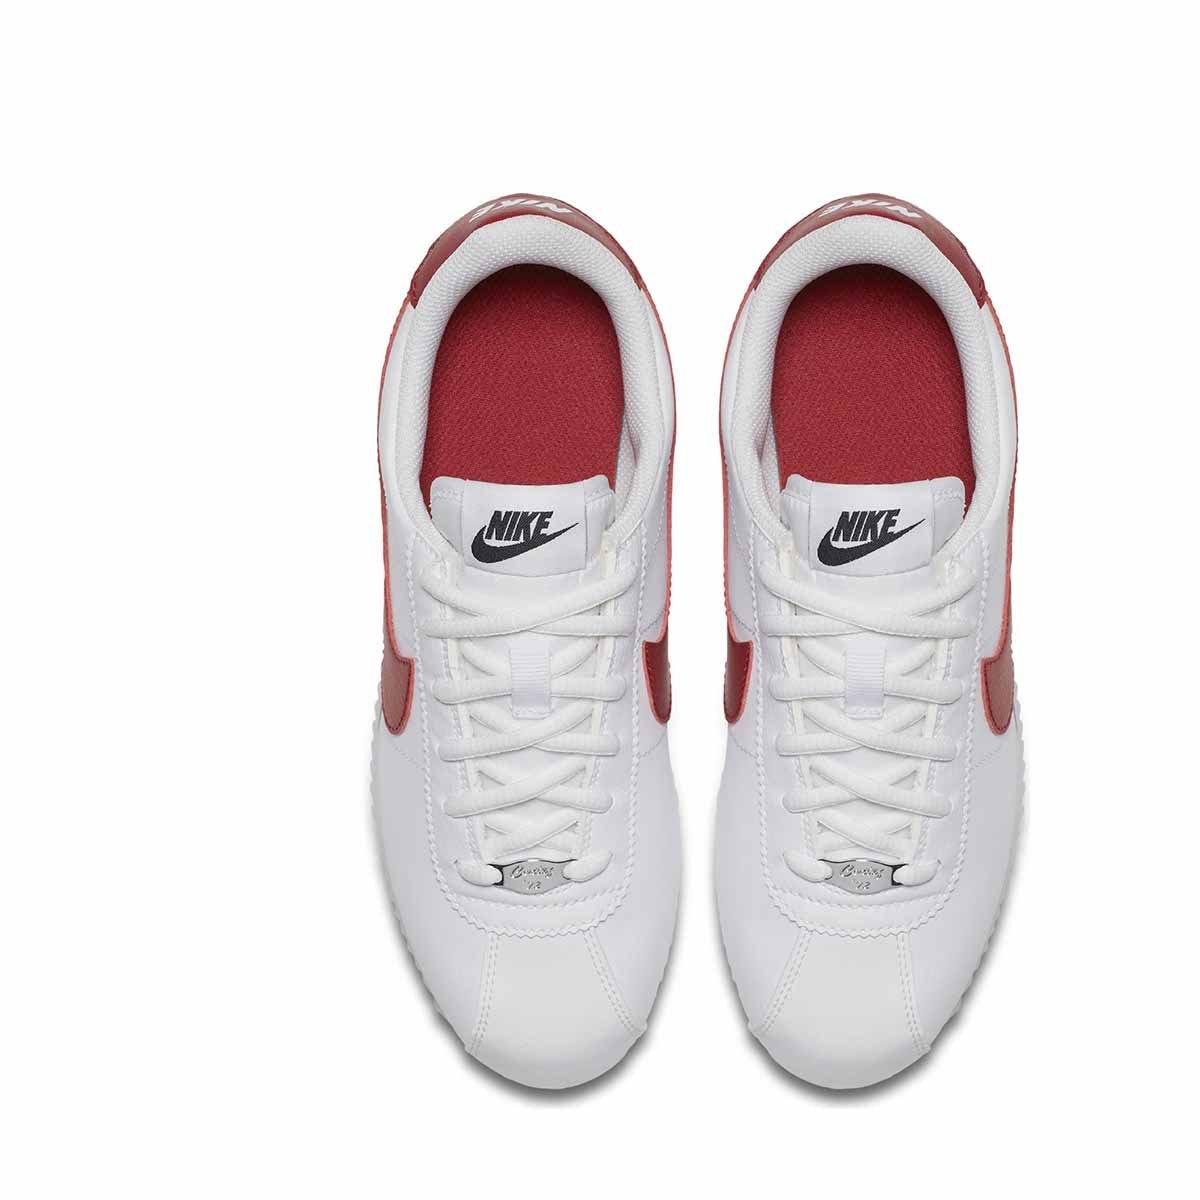 Big Kids Boys' Nike Cortez Basic